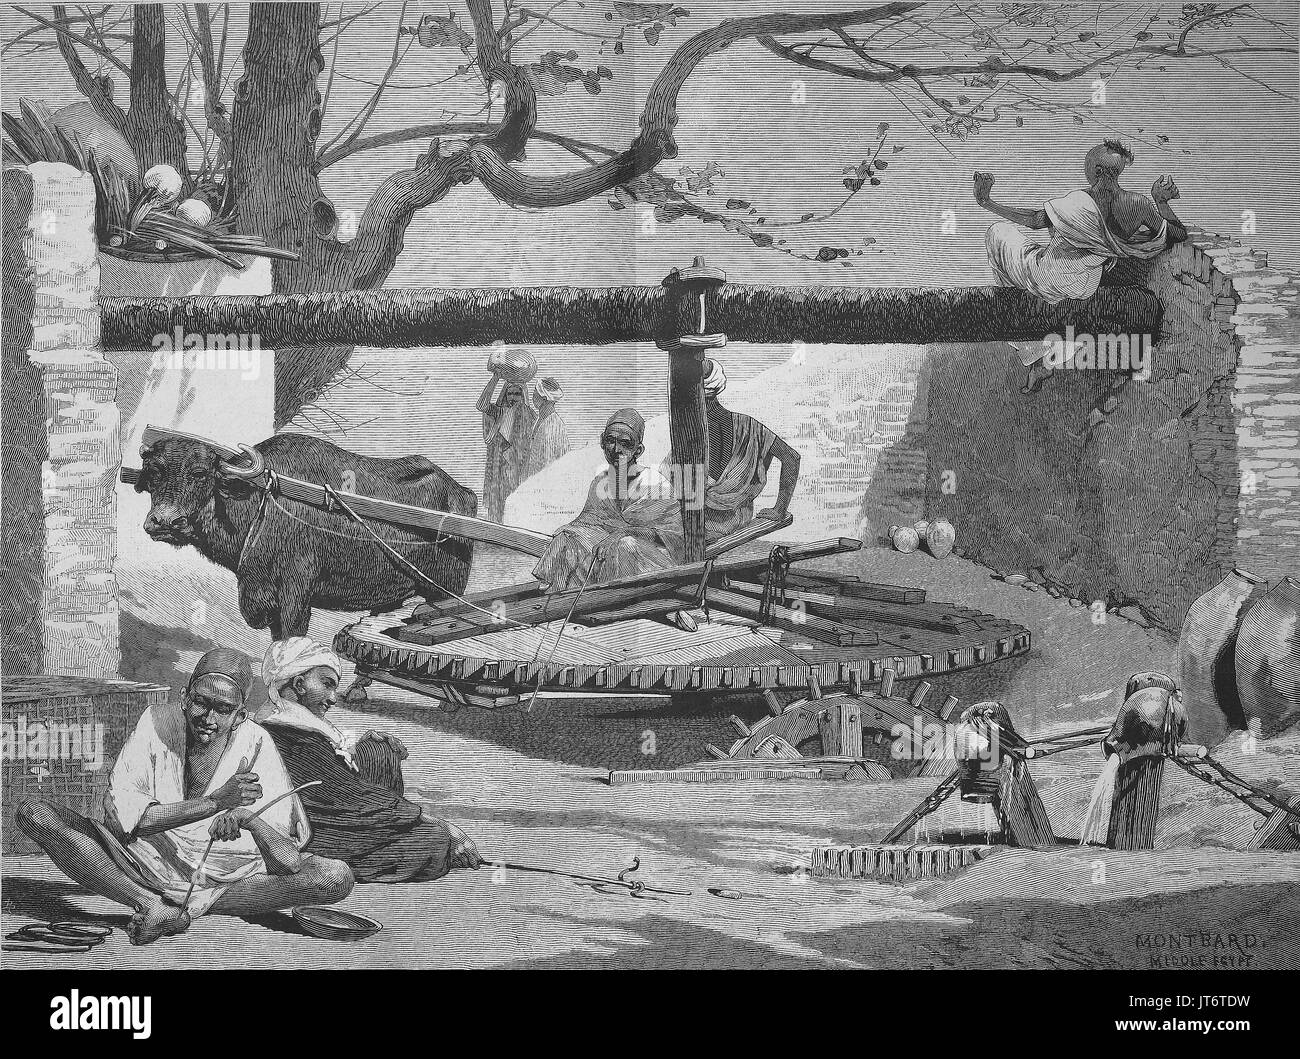 Well in Upper Egypt, the water is drawn with the help of an ox, Digital improved reproduction of an image published between 1880 - 1885 - Stock Image